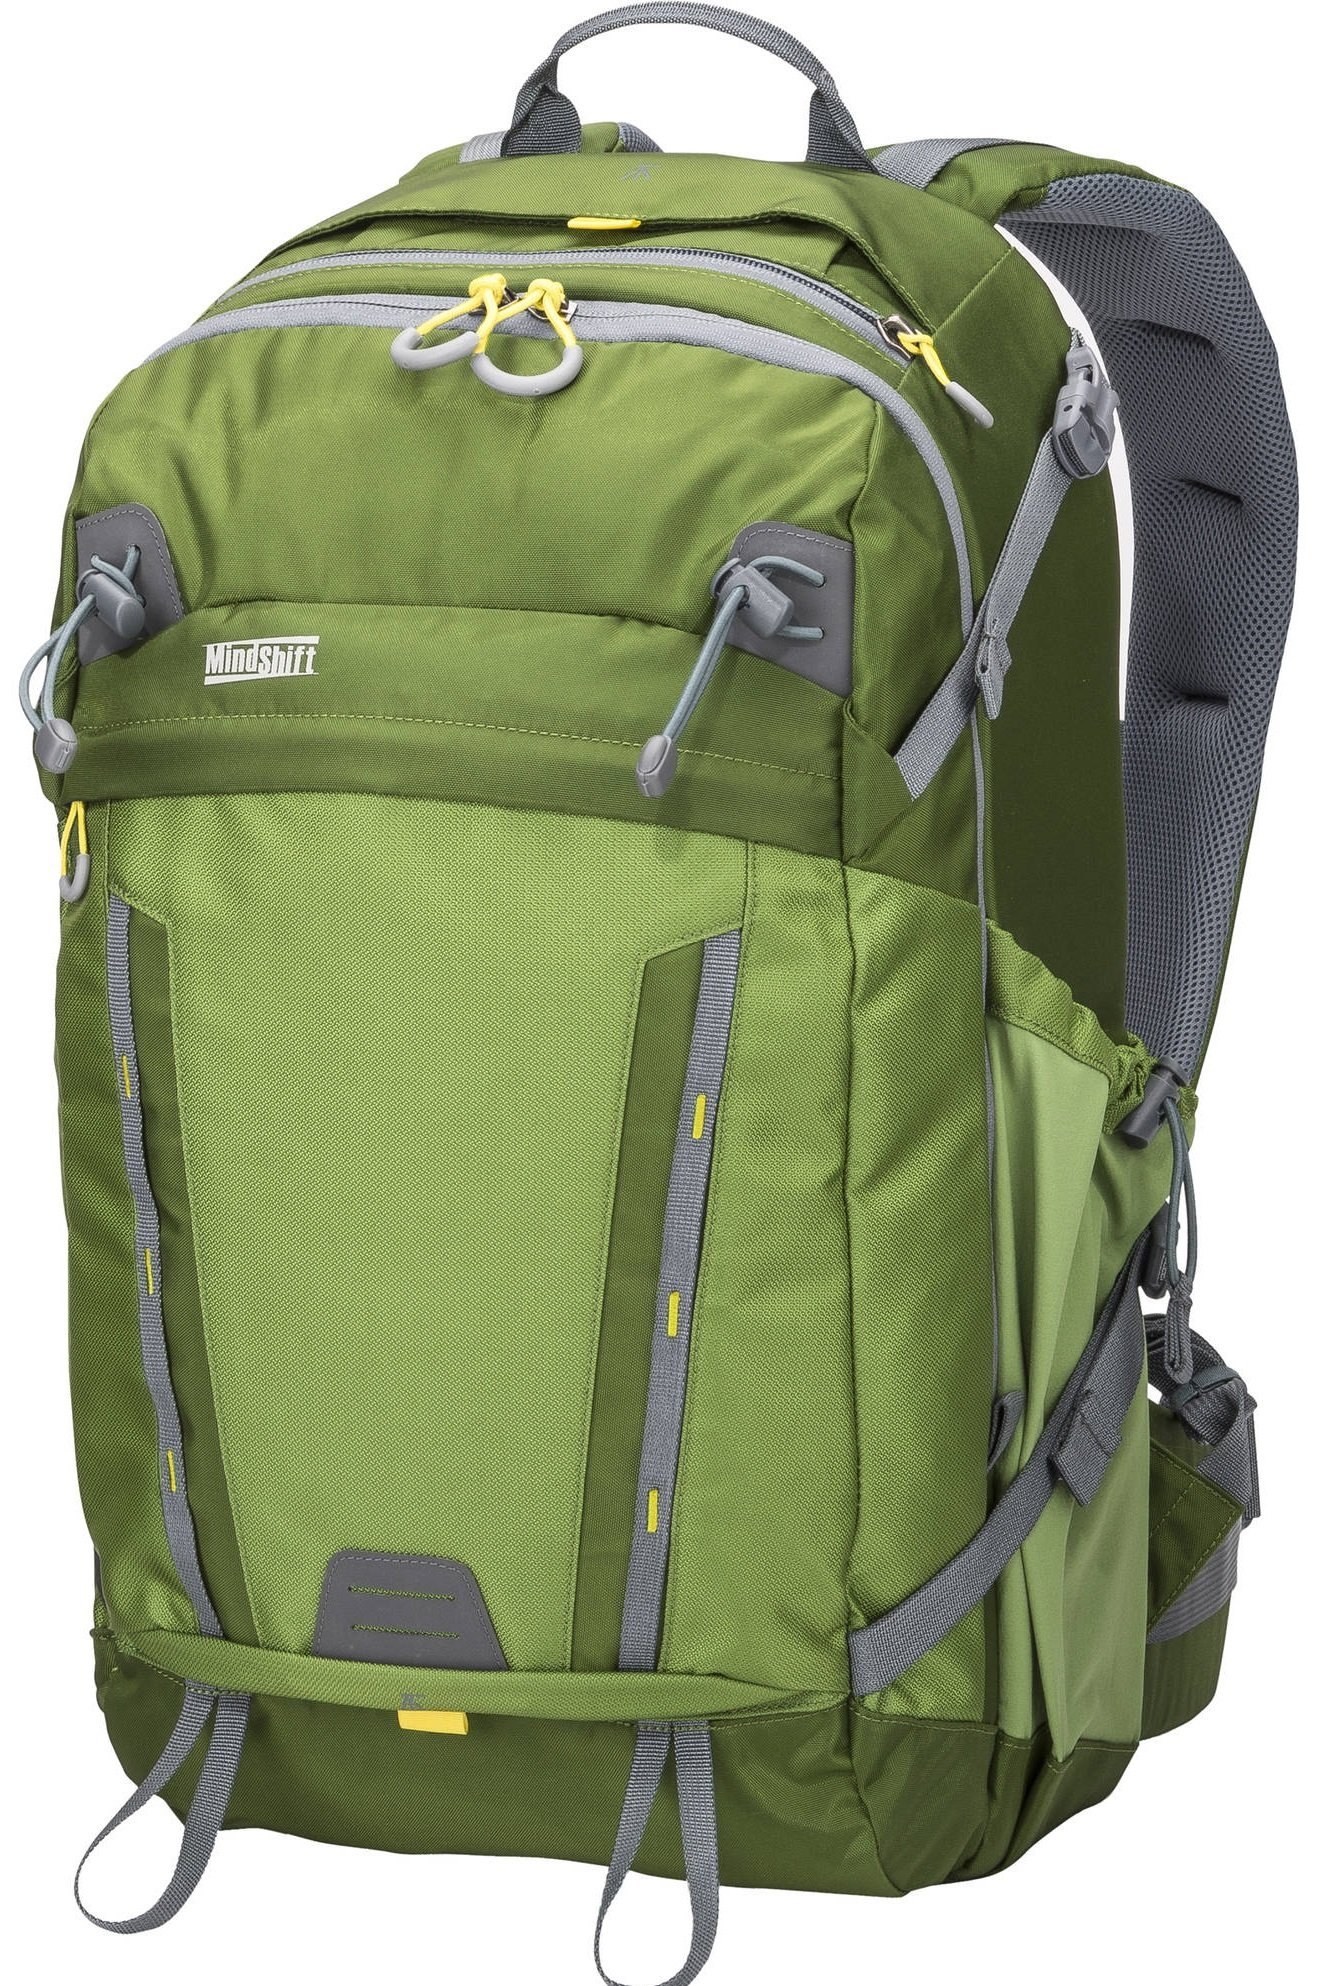 MINDSHIFT Backlight 26L daypack - zelený